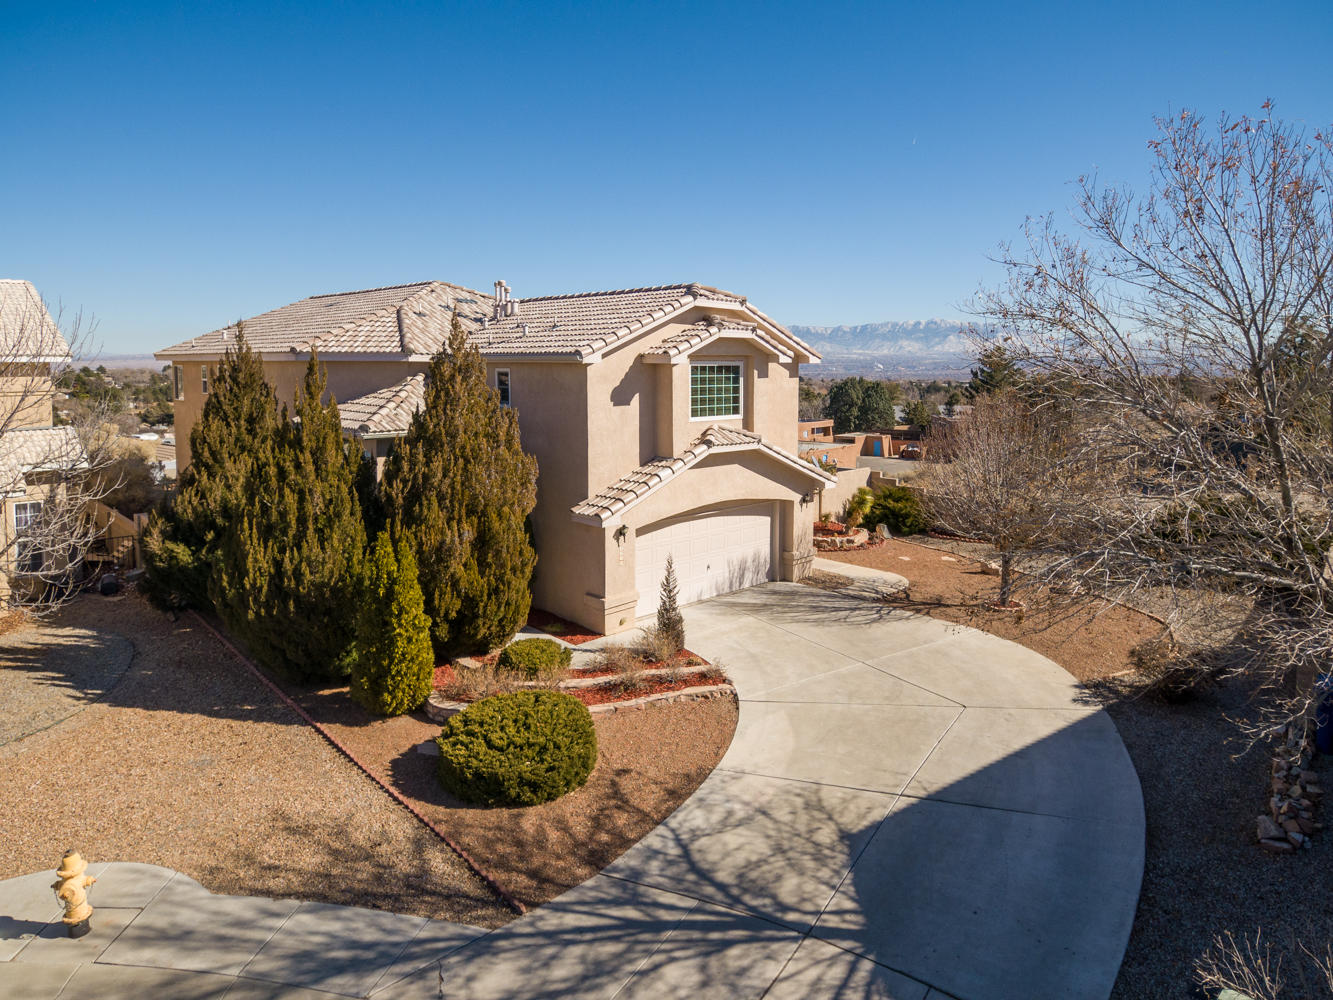 Stunning Paradise Ridge Home situated on a great culdesac lot w/unobstructed CITY & MOUNTAIN VIEWS! Showing better than a model, w/over $85K in updates & meticulously maintained, this home will not disappoint! A grand entry boasts a regal staircase & leads to the open & bright main living space w/energy efficient Anderson windows (2017), thoughtful corner fireplace, opening to the upgraded kitchen w/fine appointments including custom light fixtures; gorgeous granite counters; SS appliances; lots of cabinet space/pantry; & nook. Upper level features 2nd family room; Master retreat has private balcony & luxurious remodeled en suite w/huge walk-in closet; three addl bedrooms, one being a 2nd MBR! Enjoy low maintenance landscaping outdoors w/covered & open patio spaces, & relaxing hot tub.